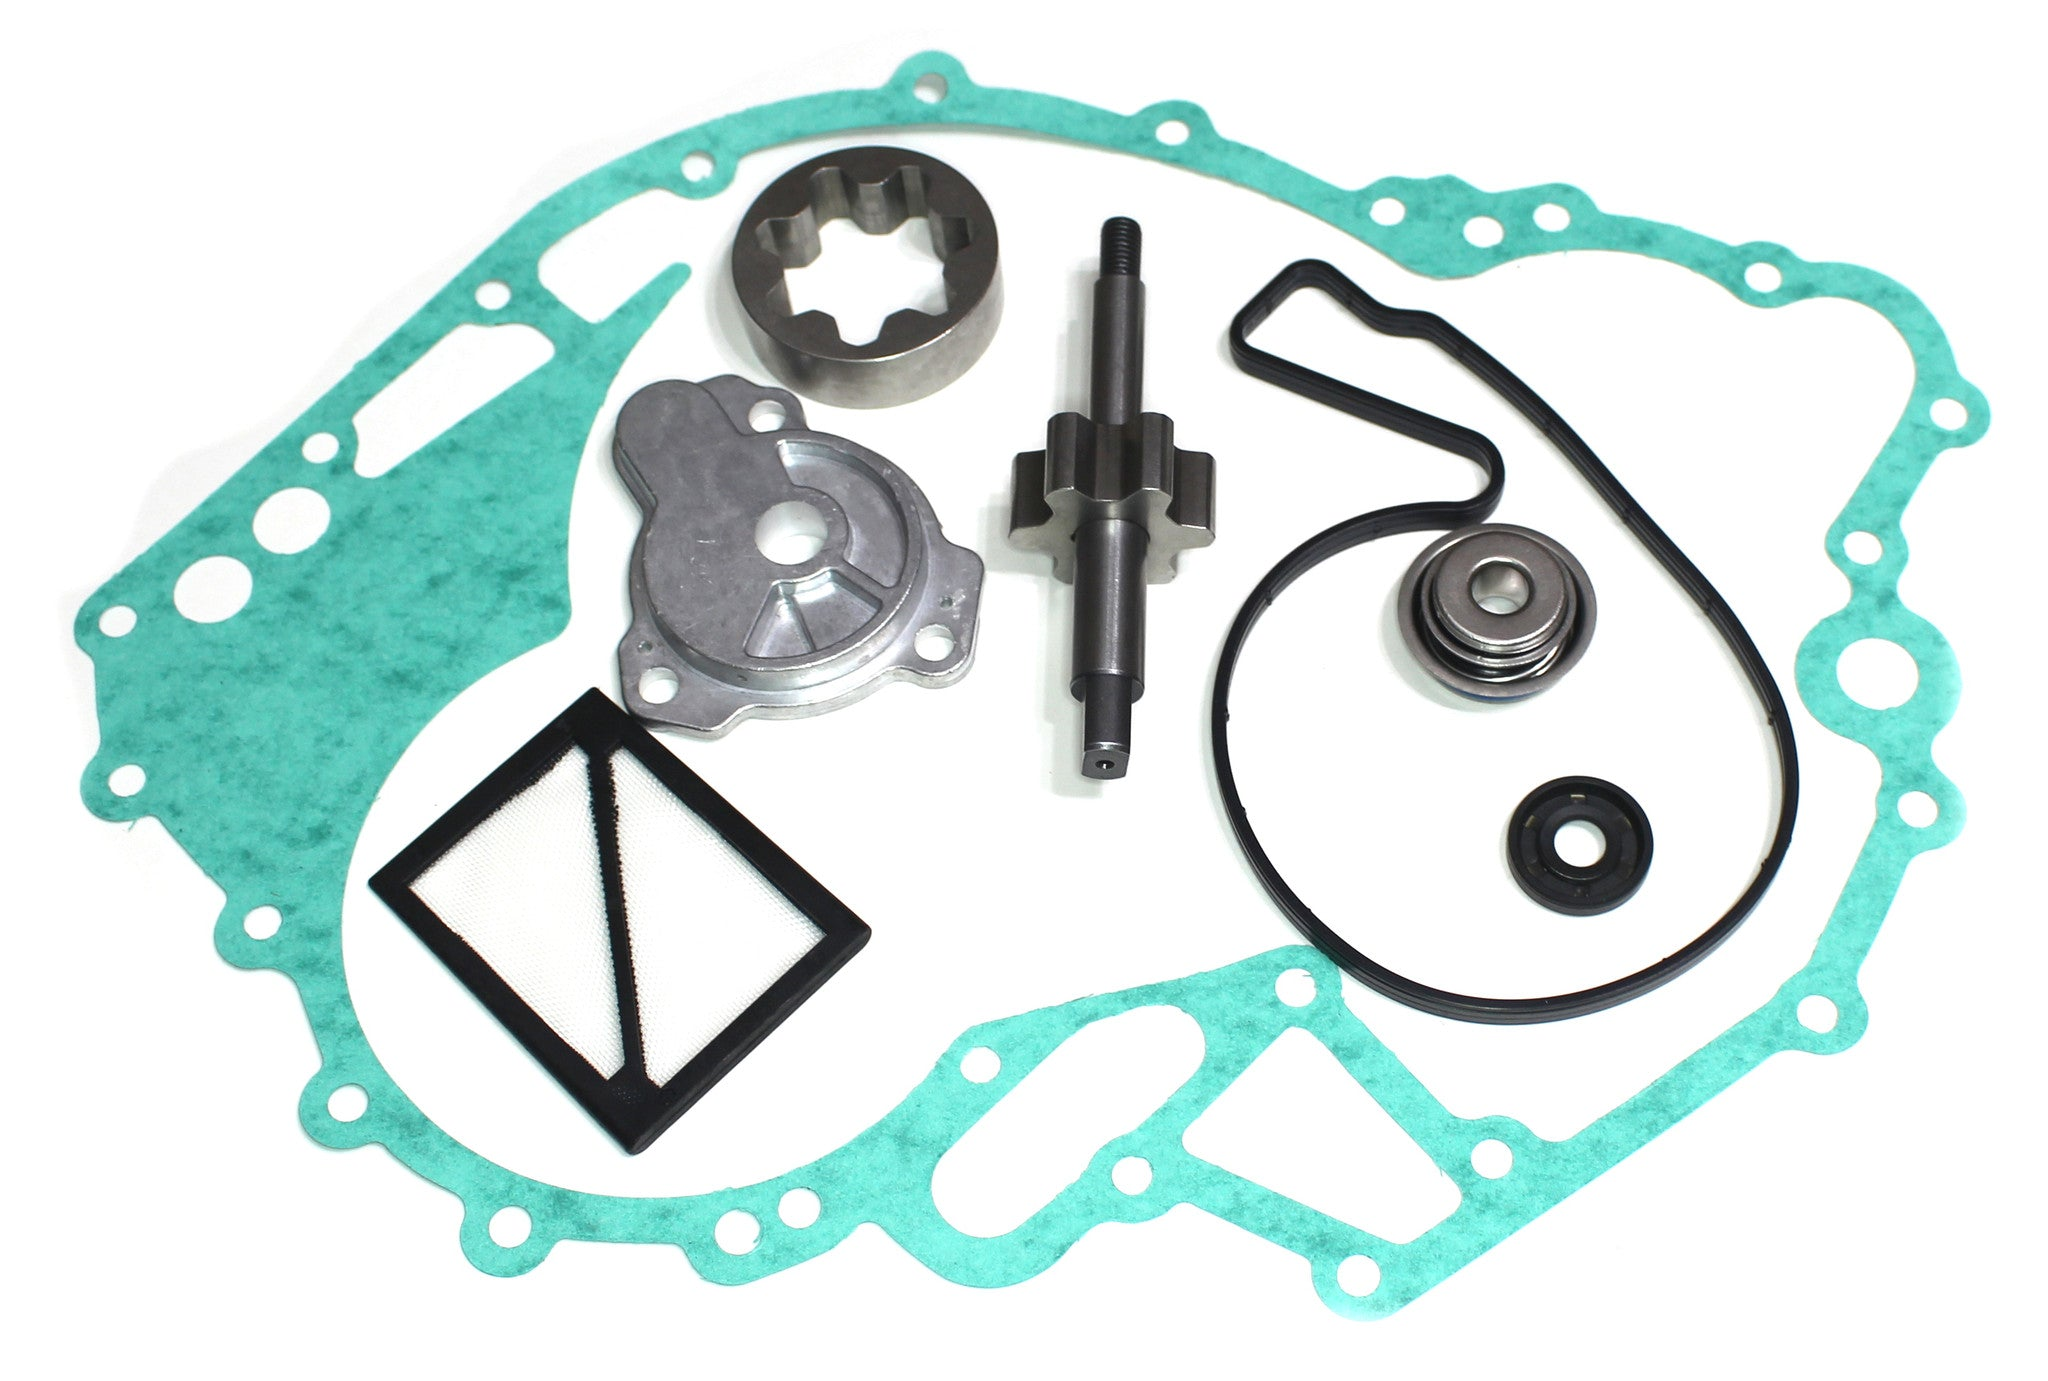 New Seadoo 4 Tec 02-14 Primary Rear Oil Pump Rebuild Kit RXP RXT